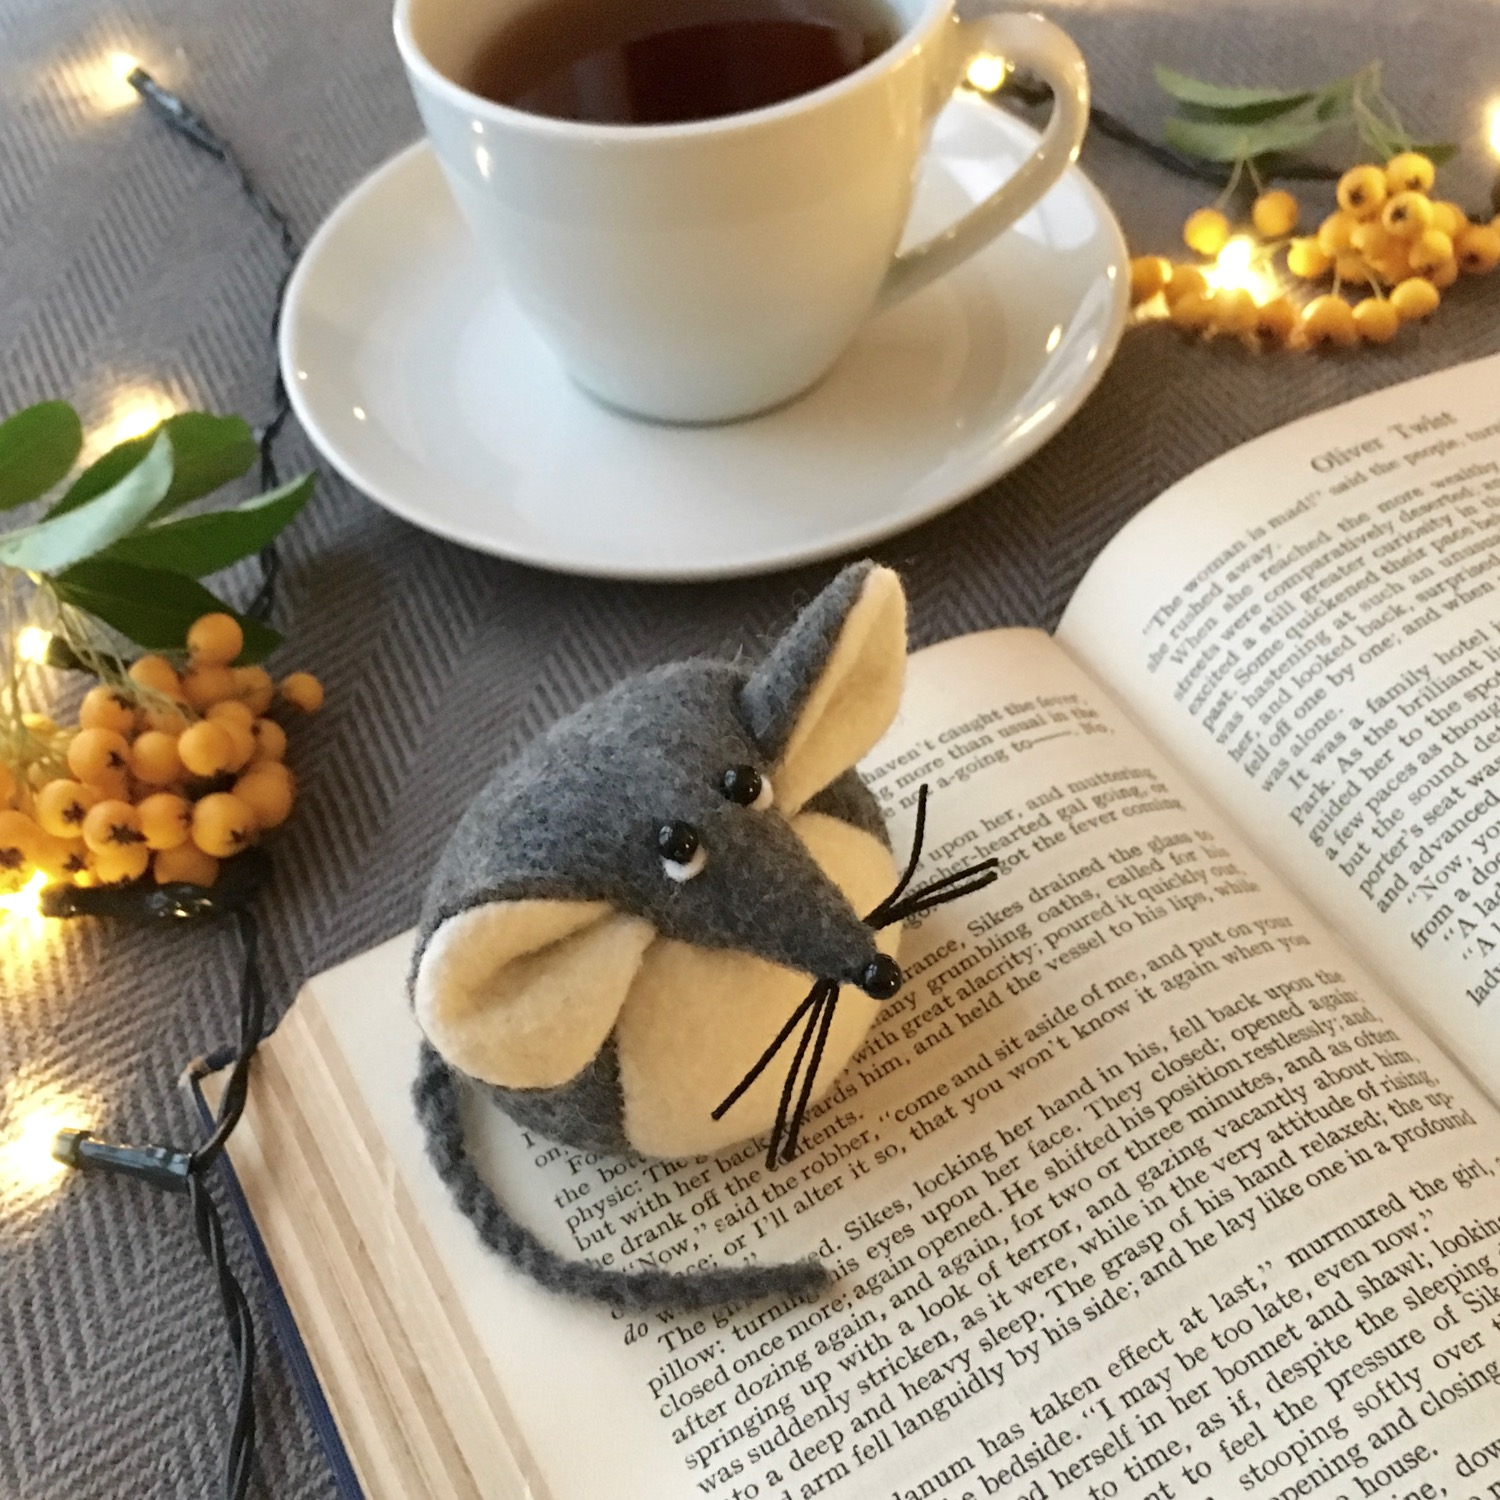 Mika the Mouse paperweight |handmade from Kunin eco felt | by Bilberry Woods.jpg